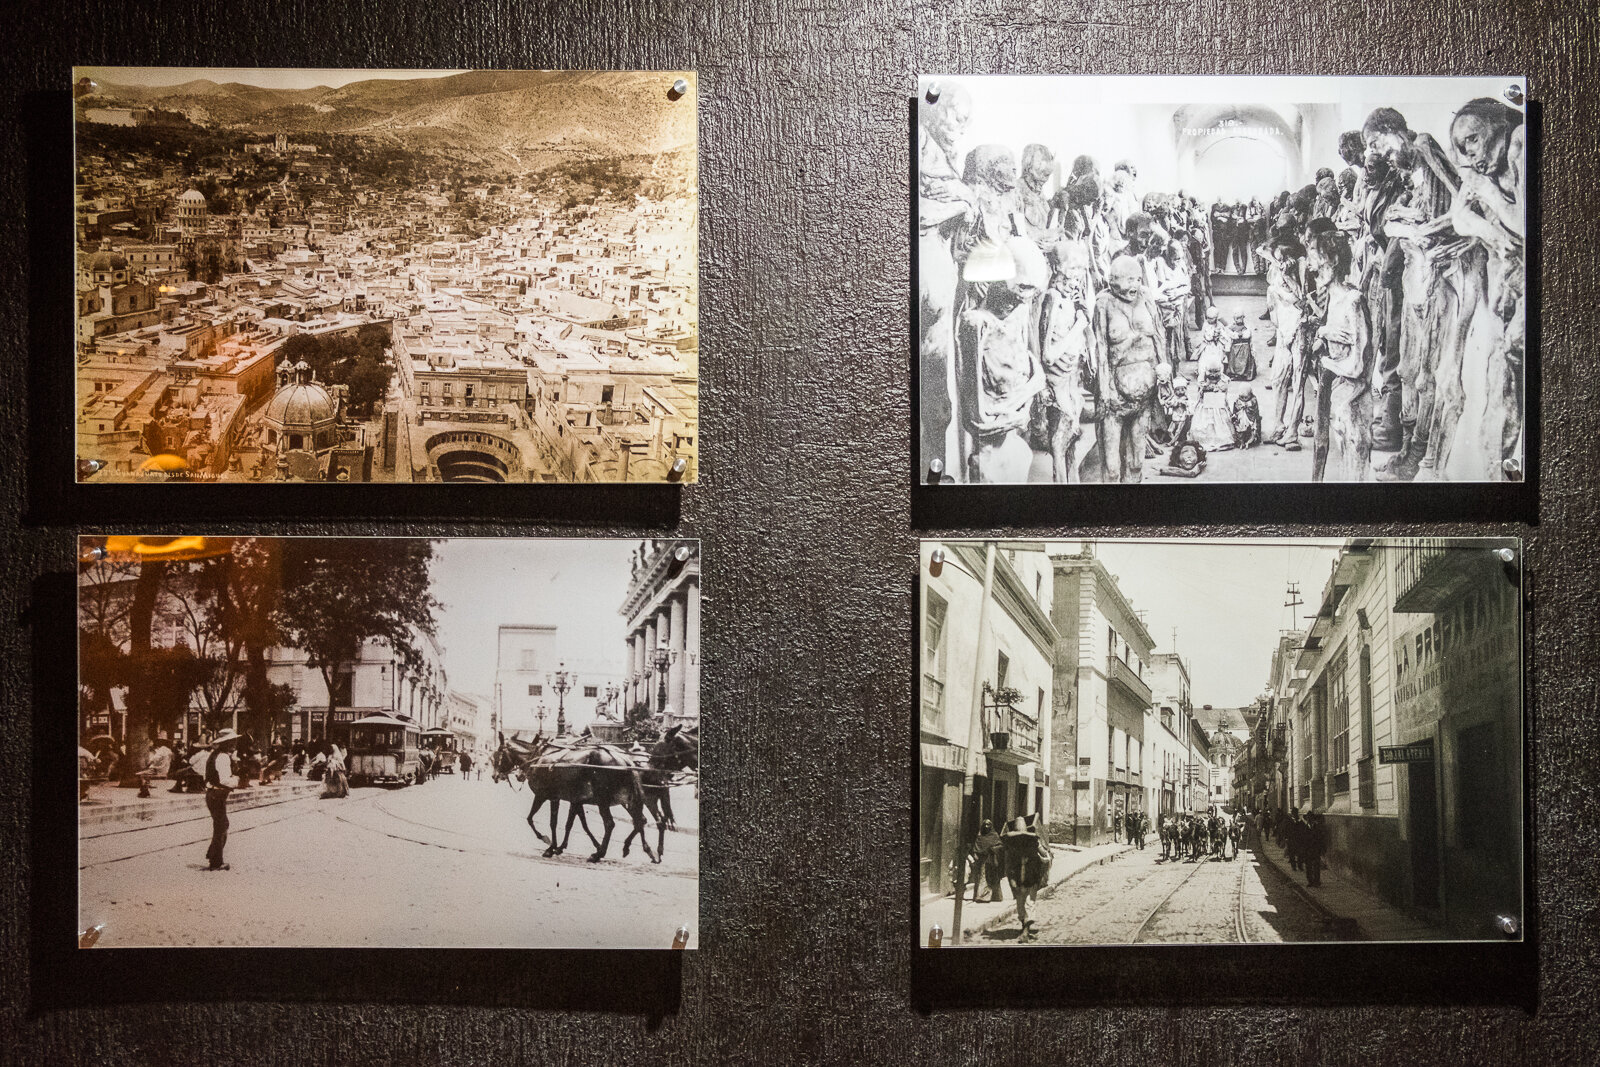 Historical photos (circa early 1900s) of this part of Guanajuato from the Museo de las Momias